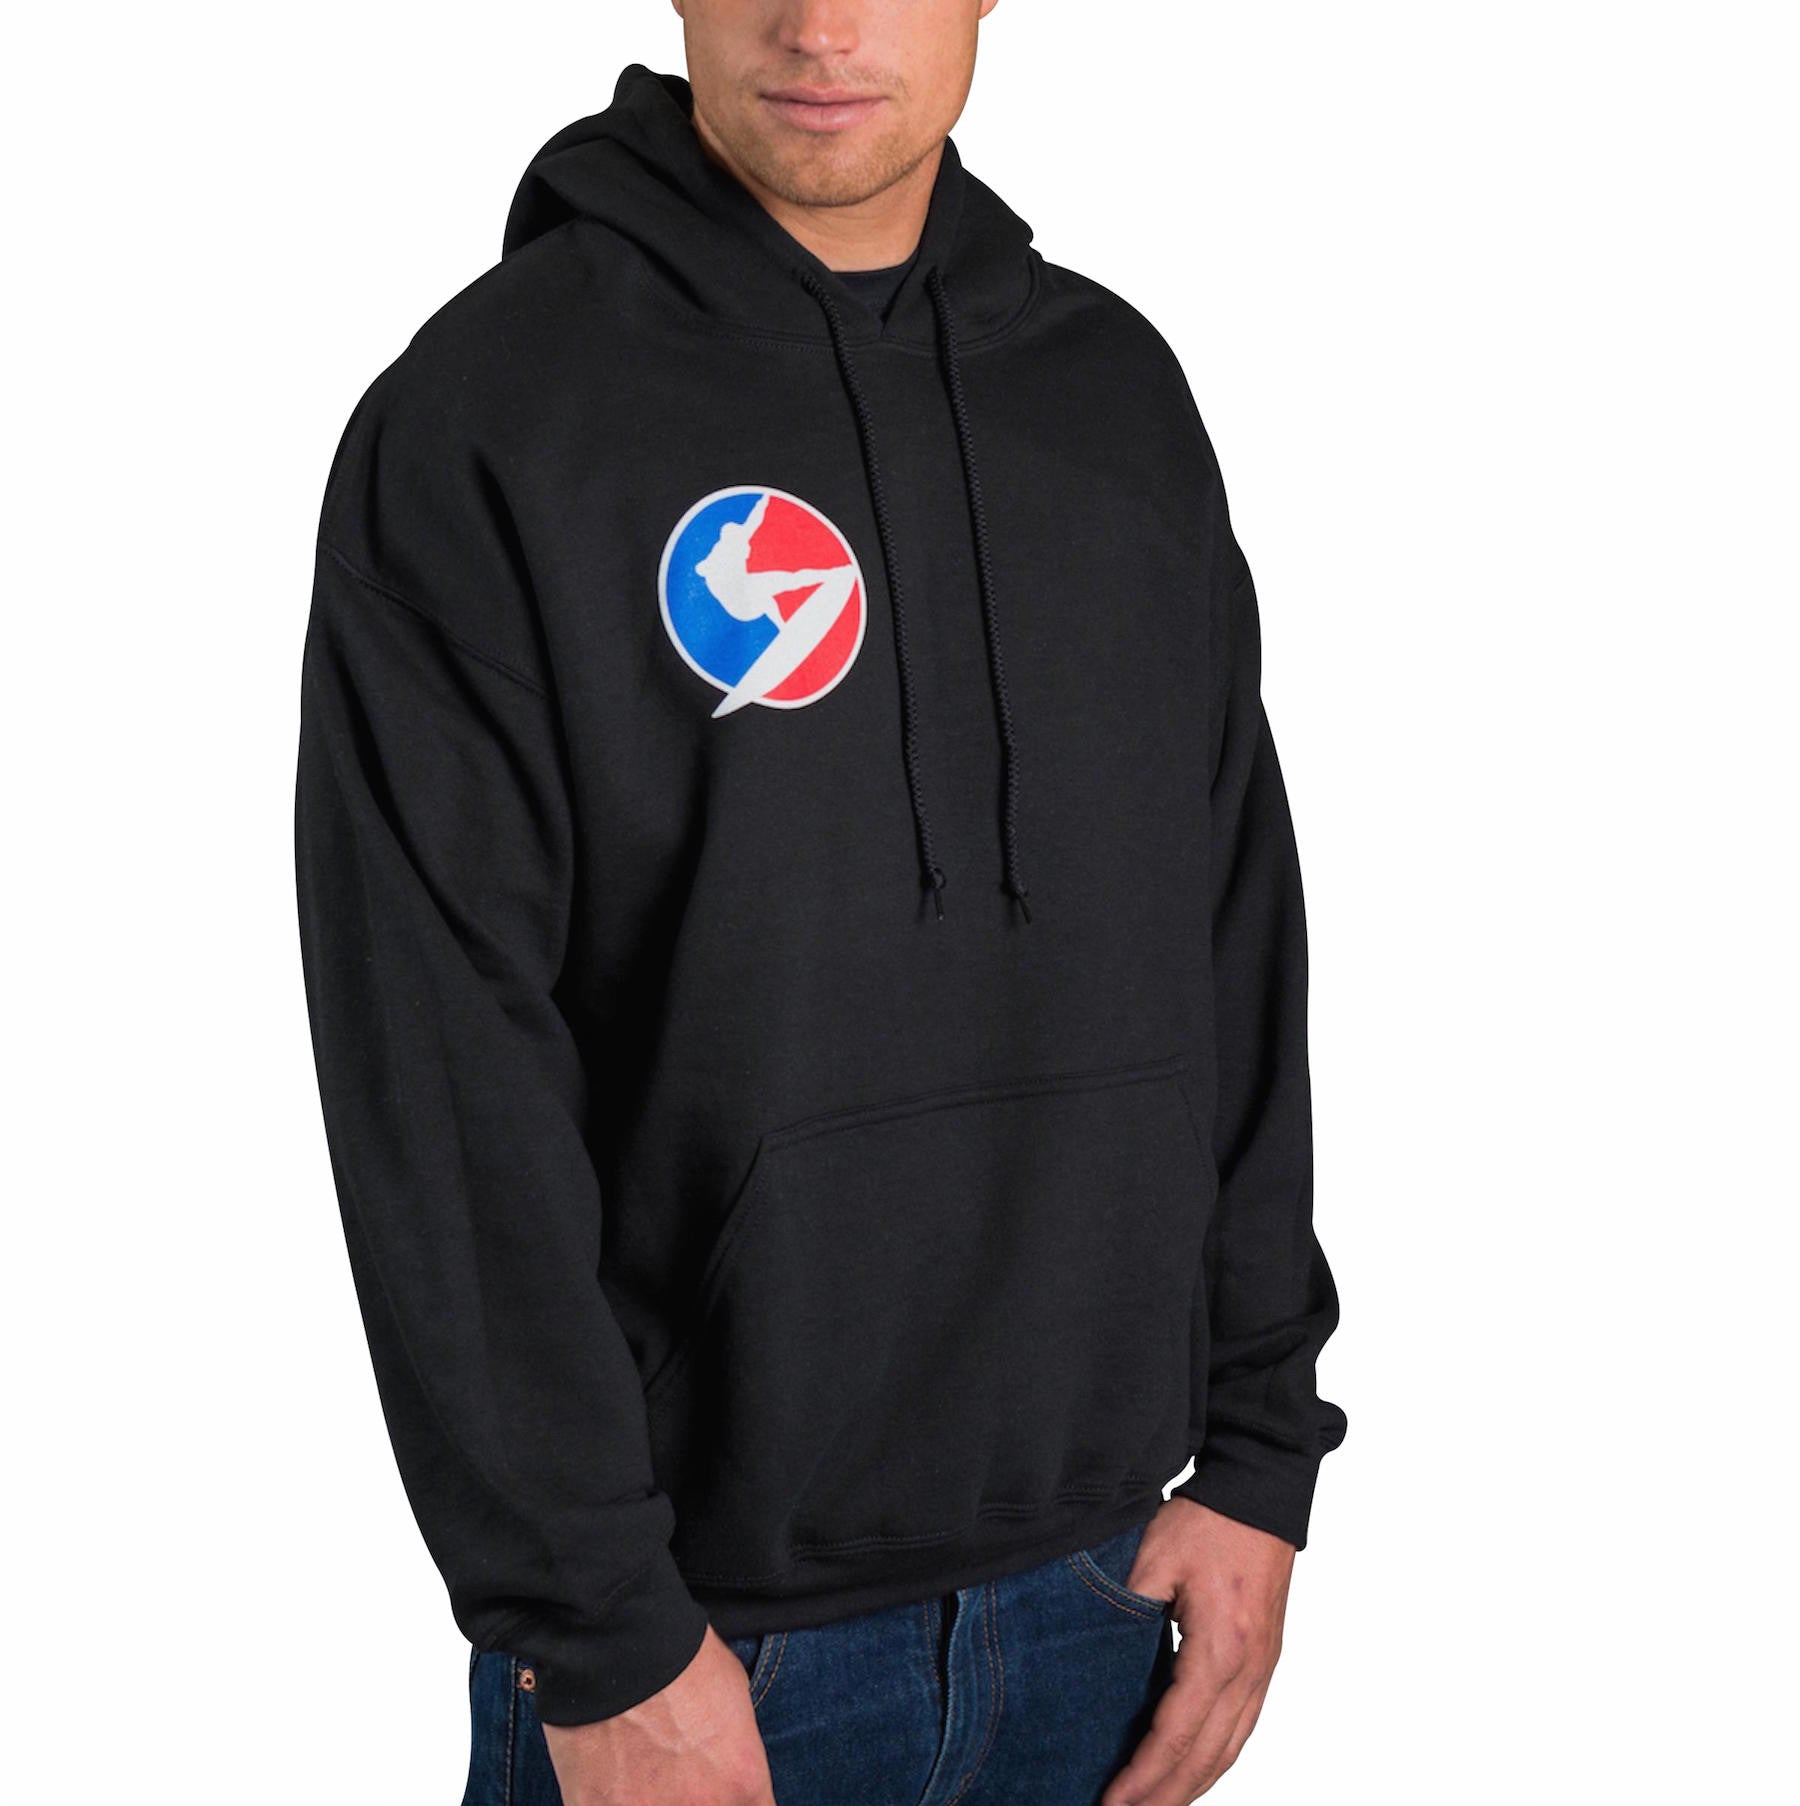 The Santa Cruz Waves Pullover Hoody